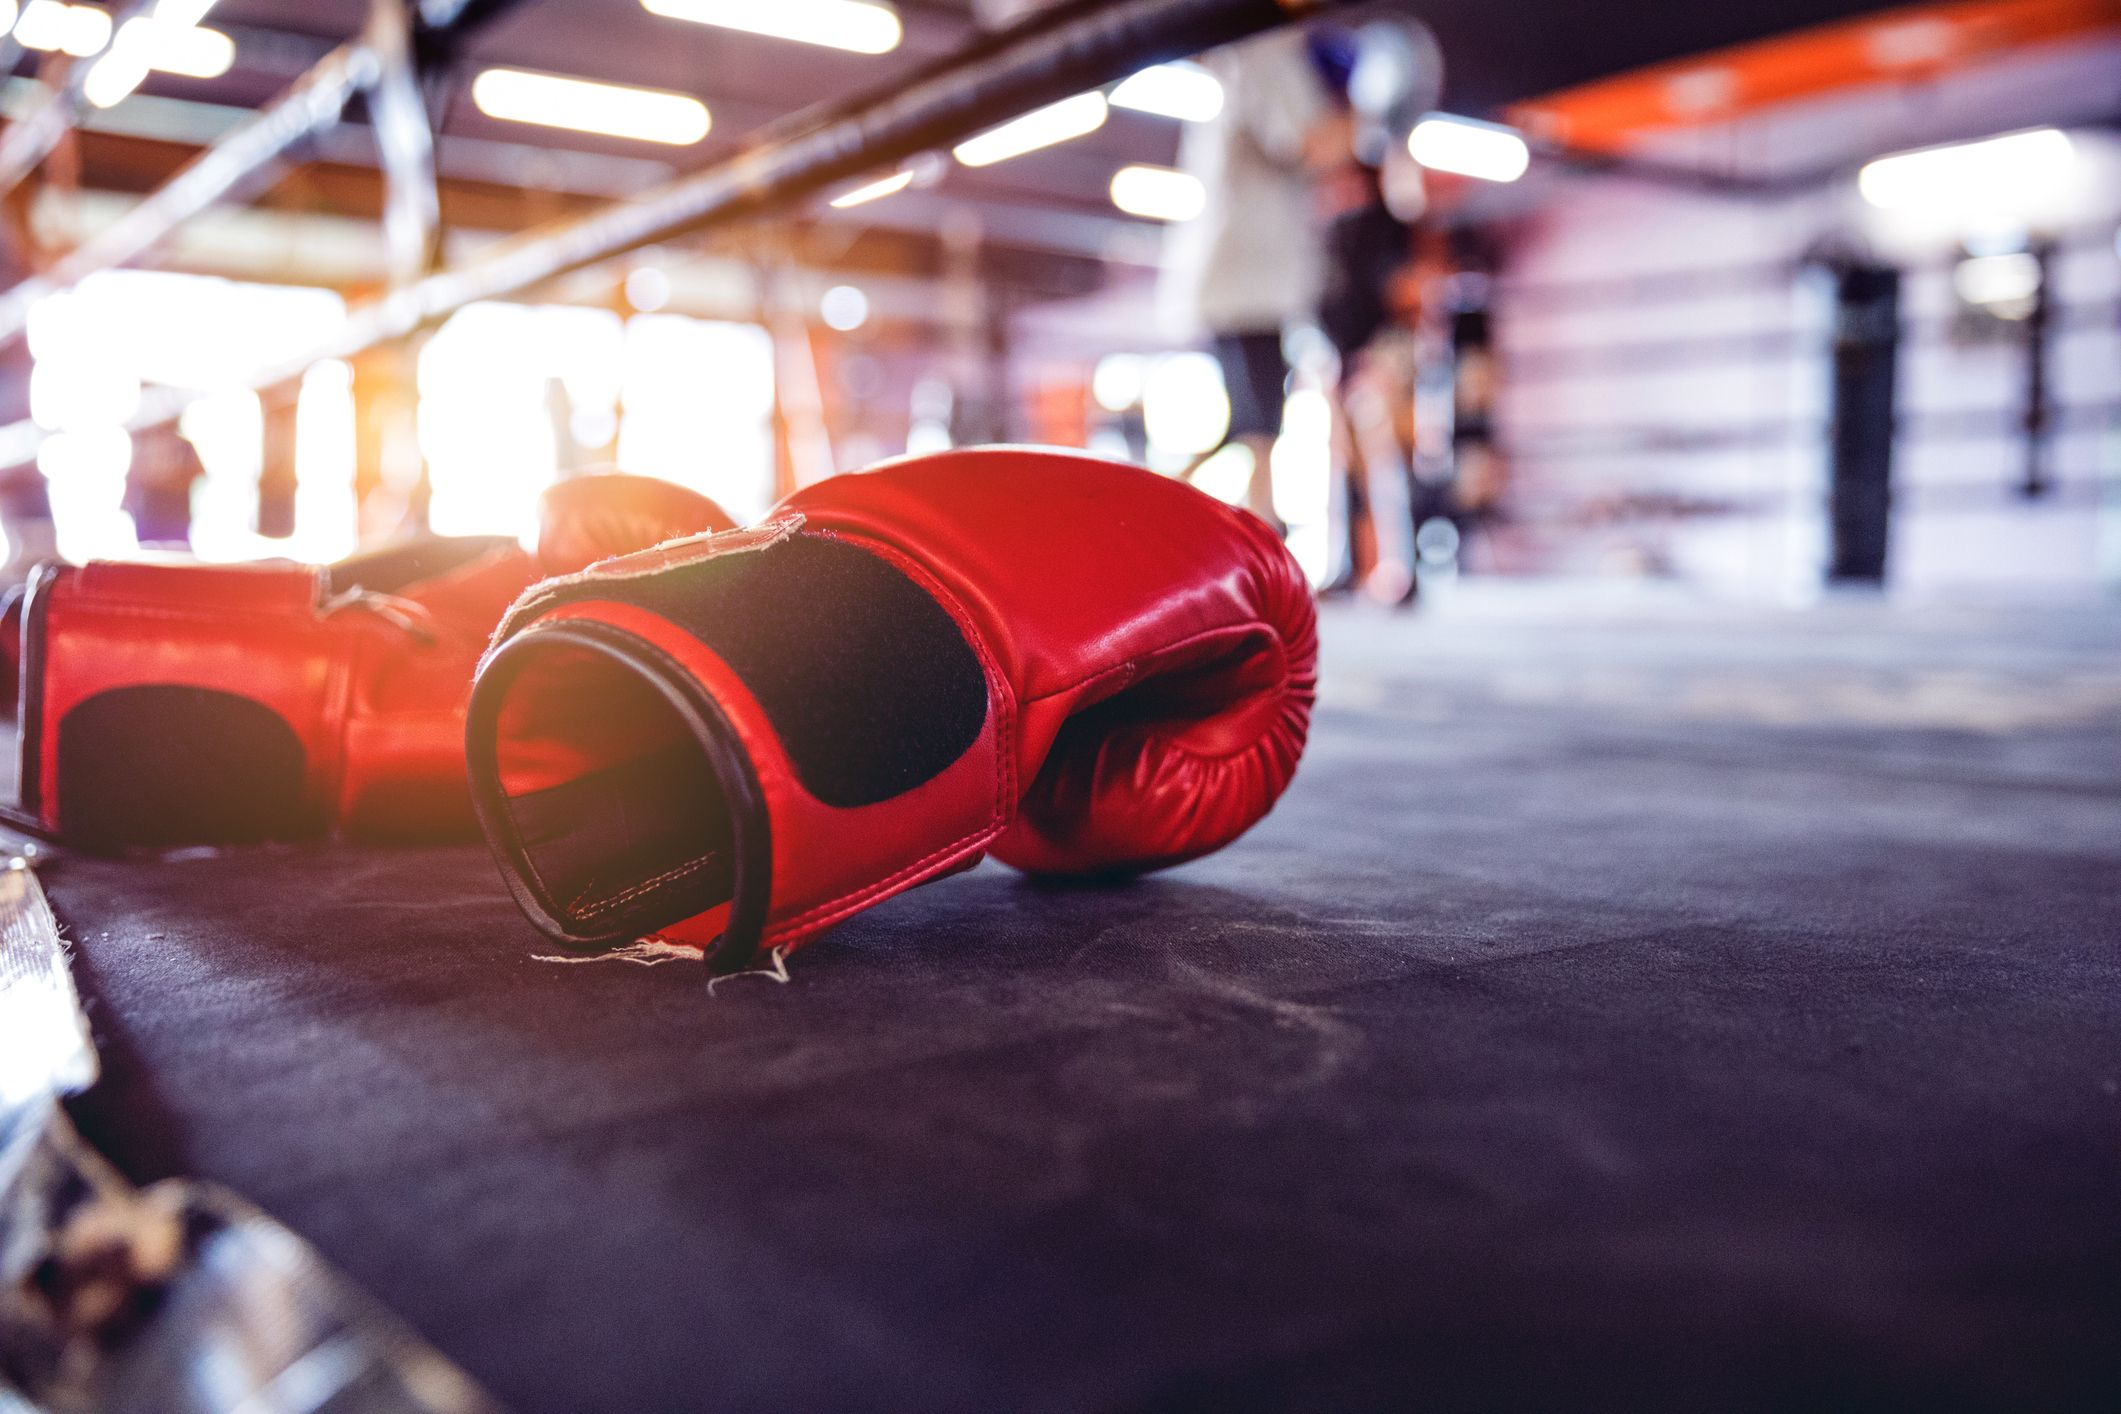 Boxing gloves on floor of ring